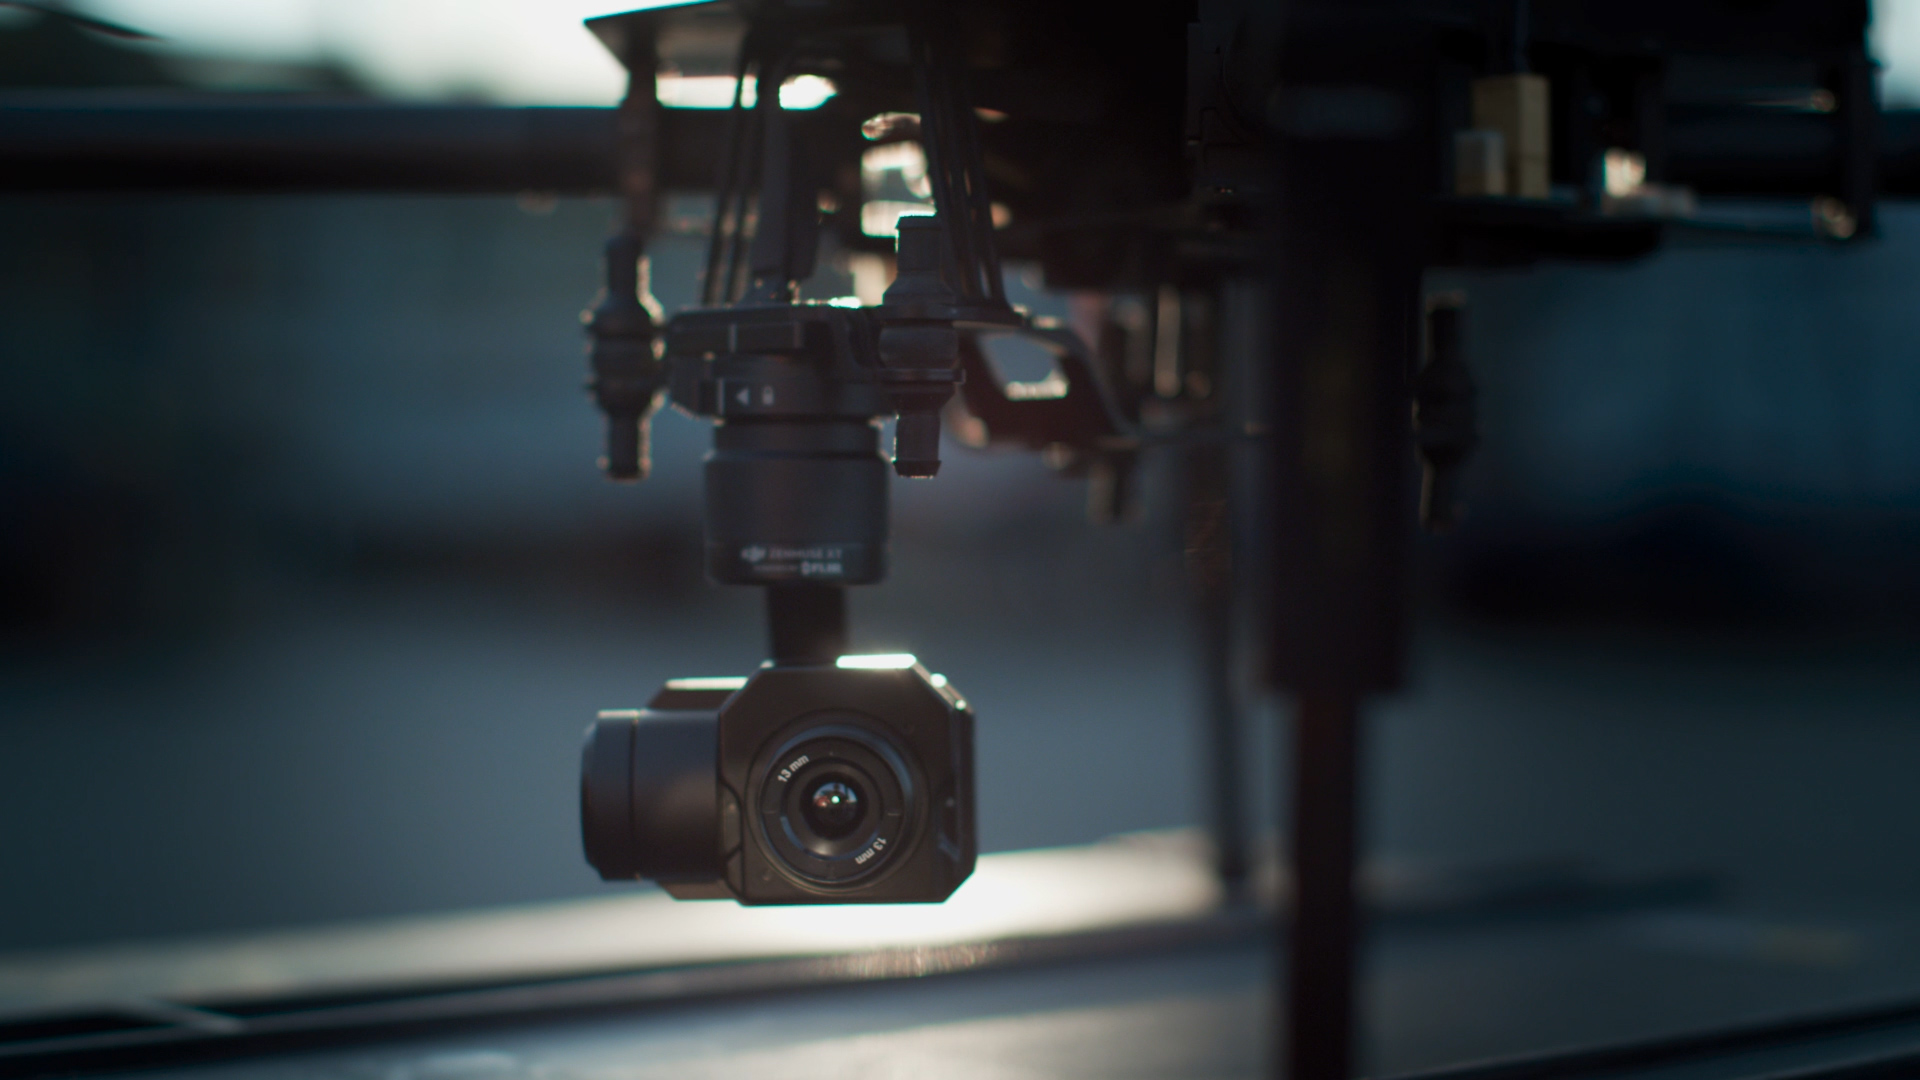 Zenmuse XT on drone close-up